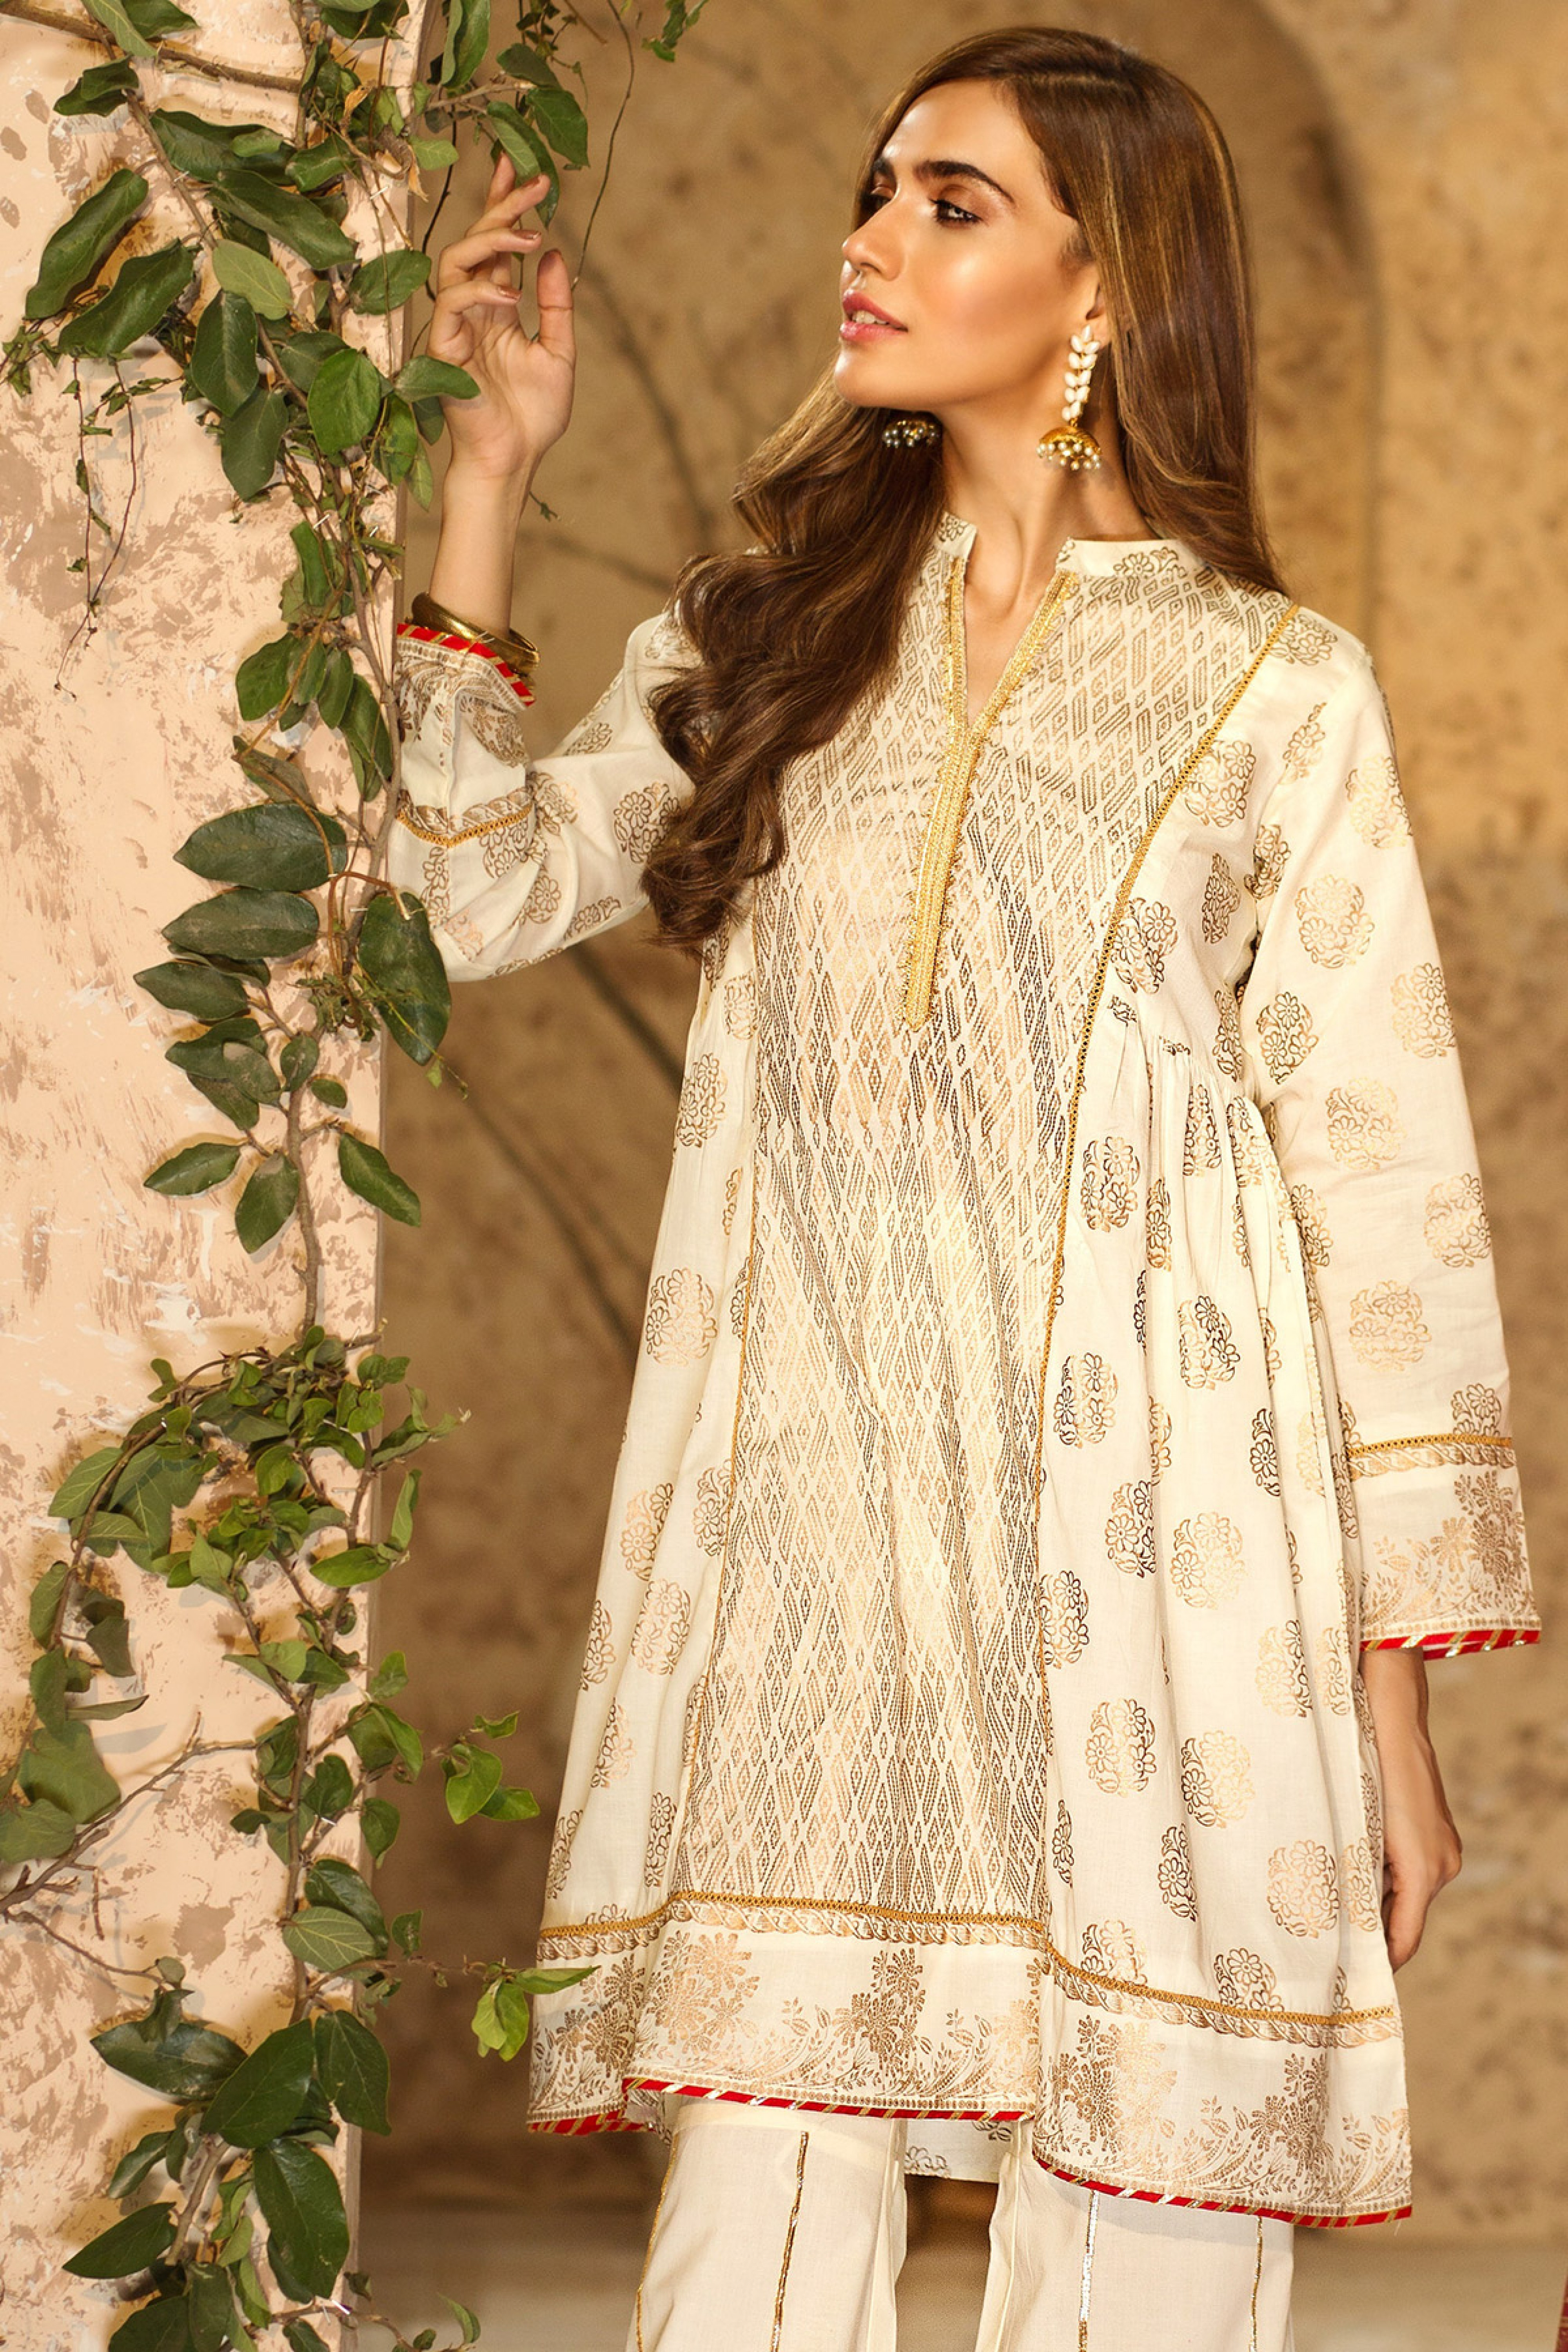 ISHQ(Gold printed Frock )